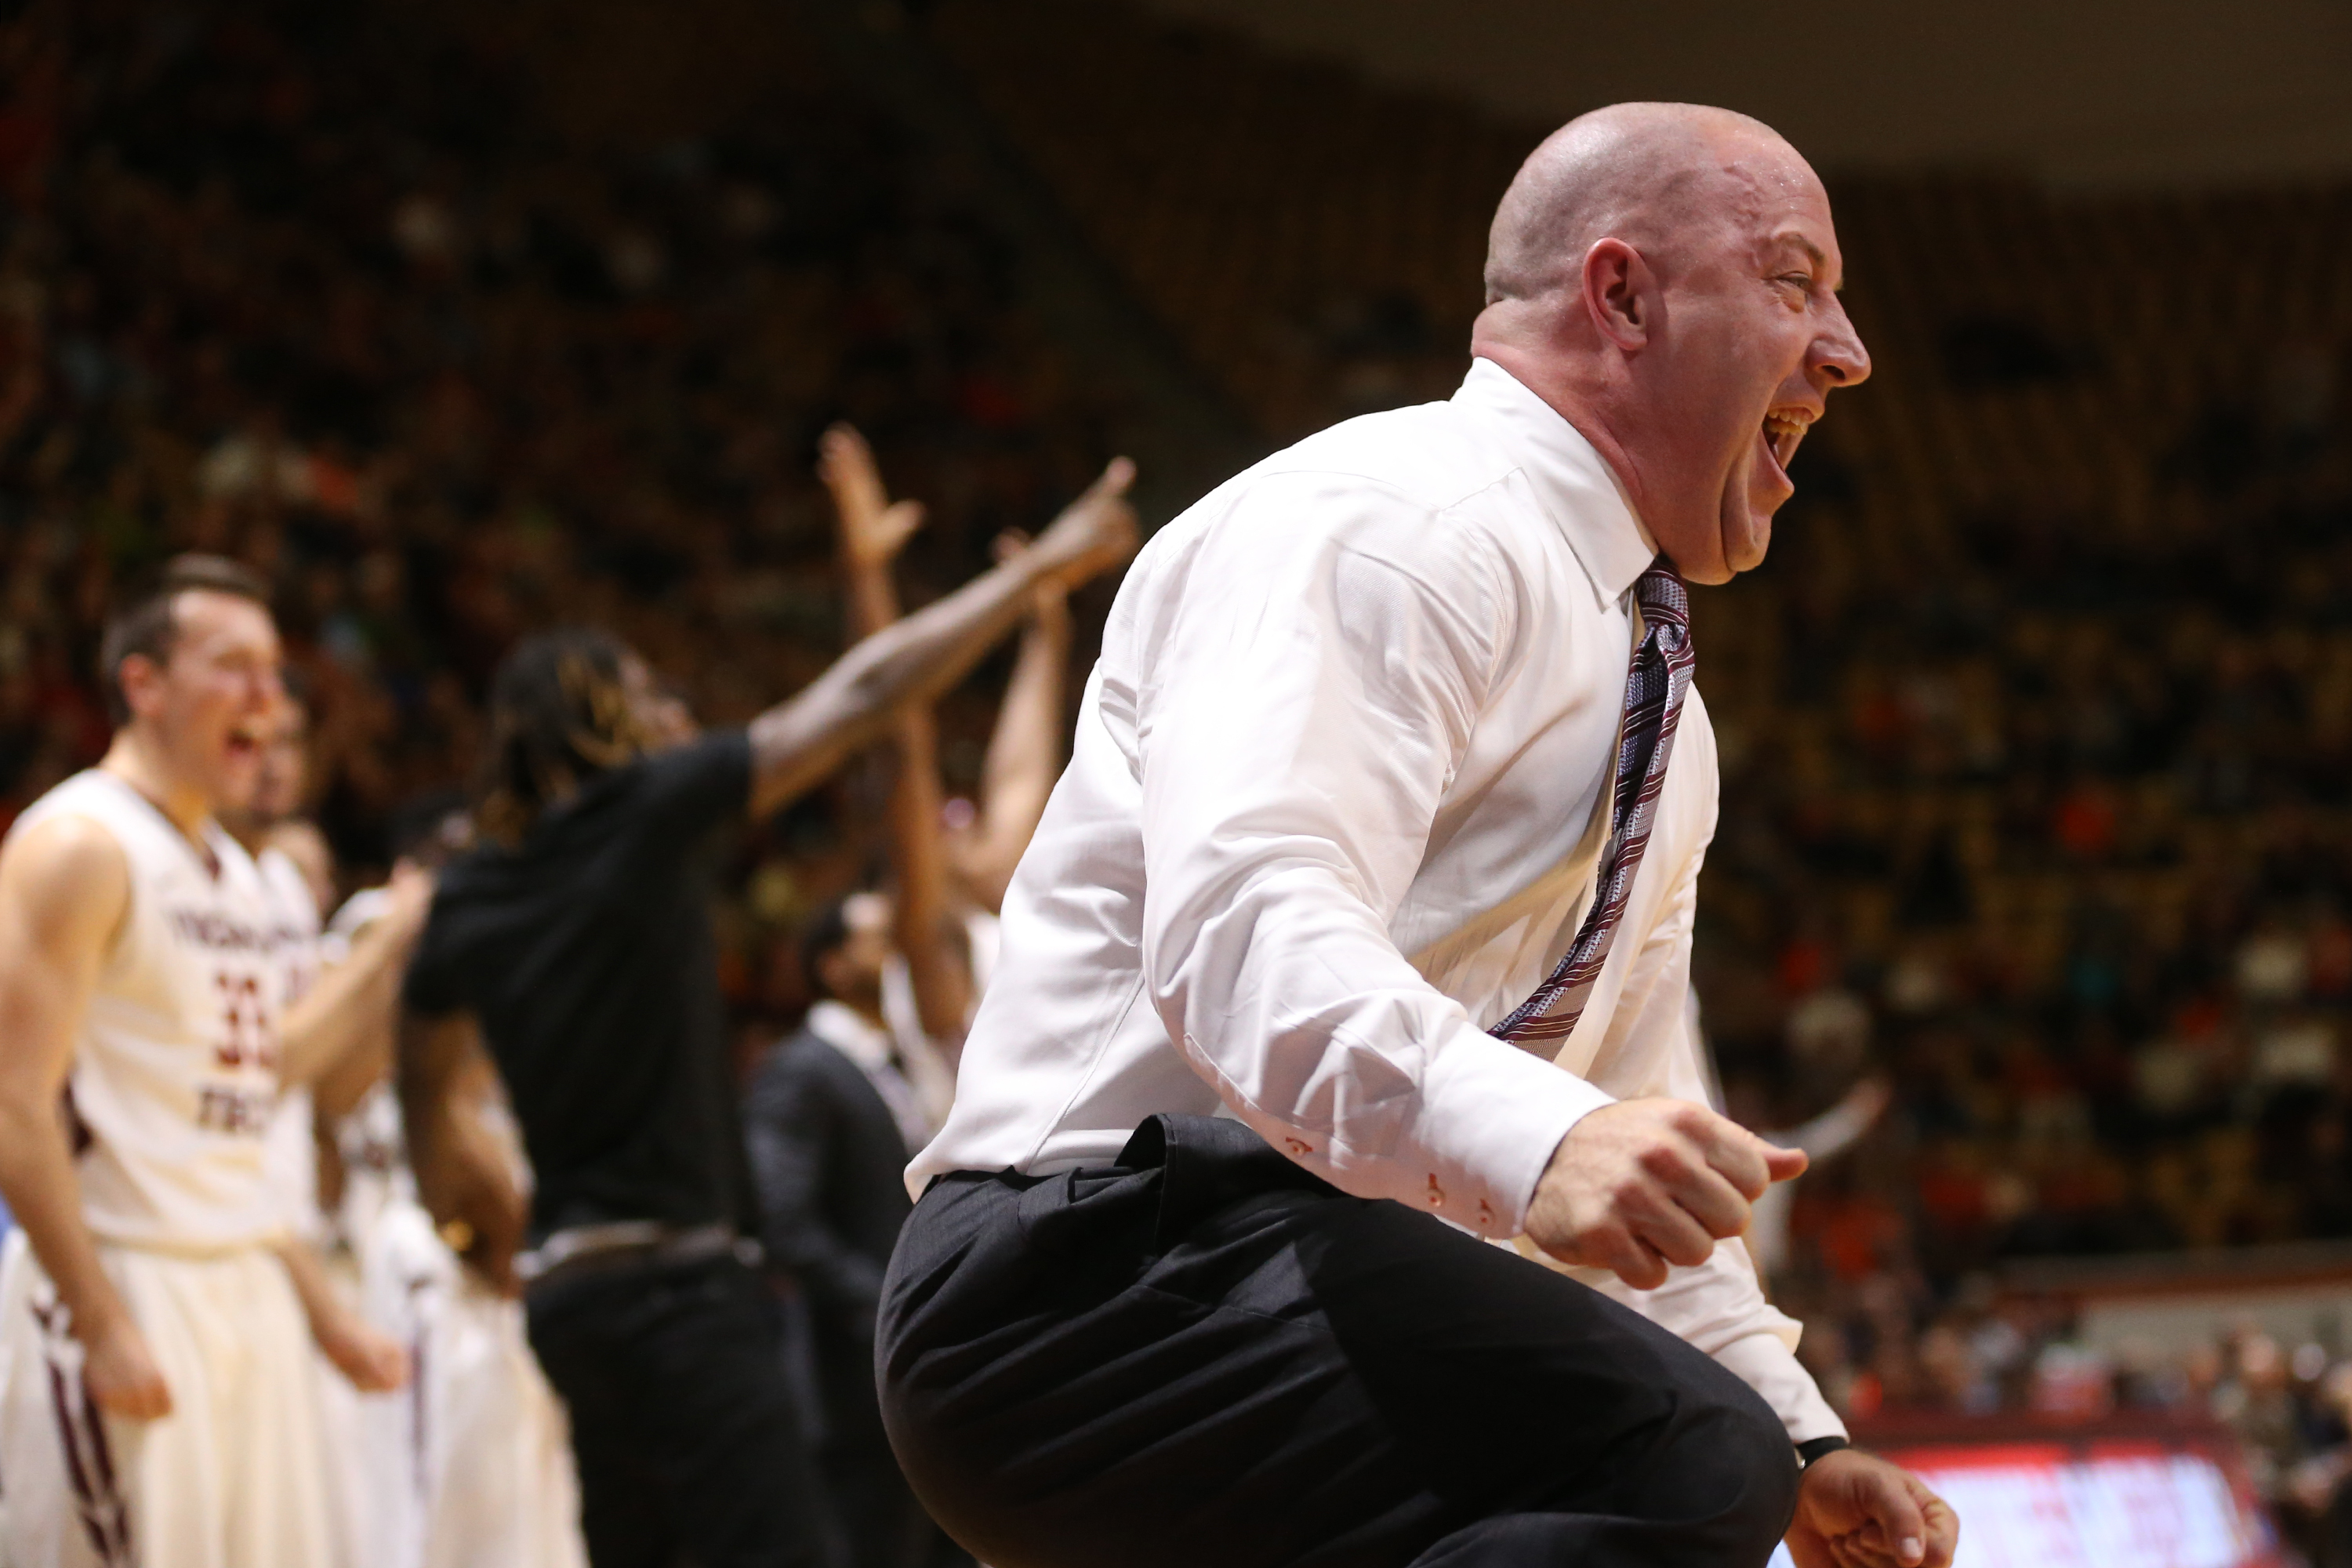 Virginia Tech head coach Buzz Williams celebrates a play in the first half of an NCAA college basketball game against Virginia, Monday, Jan. 4, 2016, in Blacksburg, Va. (Matt Gentry/The Roanoke Times via AP) LOCAL STATIONS OUT; LOCAL INTERNET OUT; LOCAL PRINT OUT (SALEM TIMES REGISTER; FINCASTLE HERALD; CHRISTIANSBURG NEWS MESSENGER; RADFORD NEWS JOURNAL; ROANOKE STAR SENTINEL; MANDATORY CREDIT